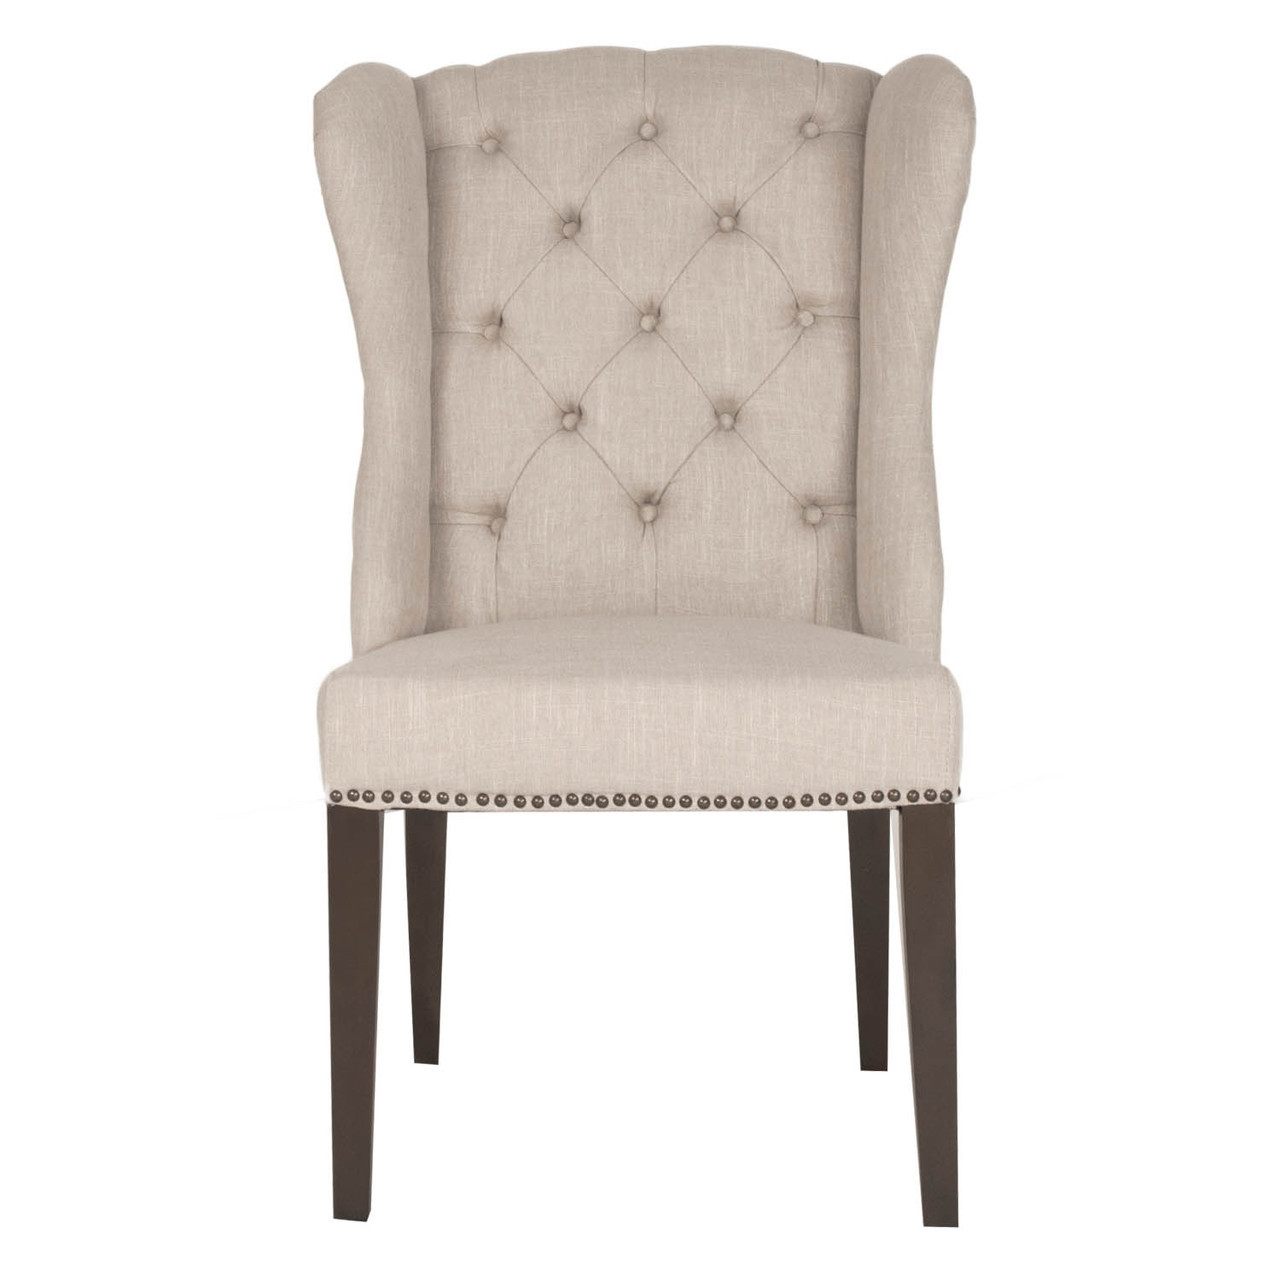 tufted wingback dining chair office disposal maison hostess zin home